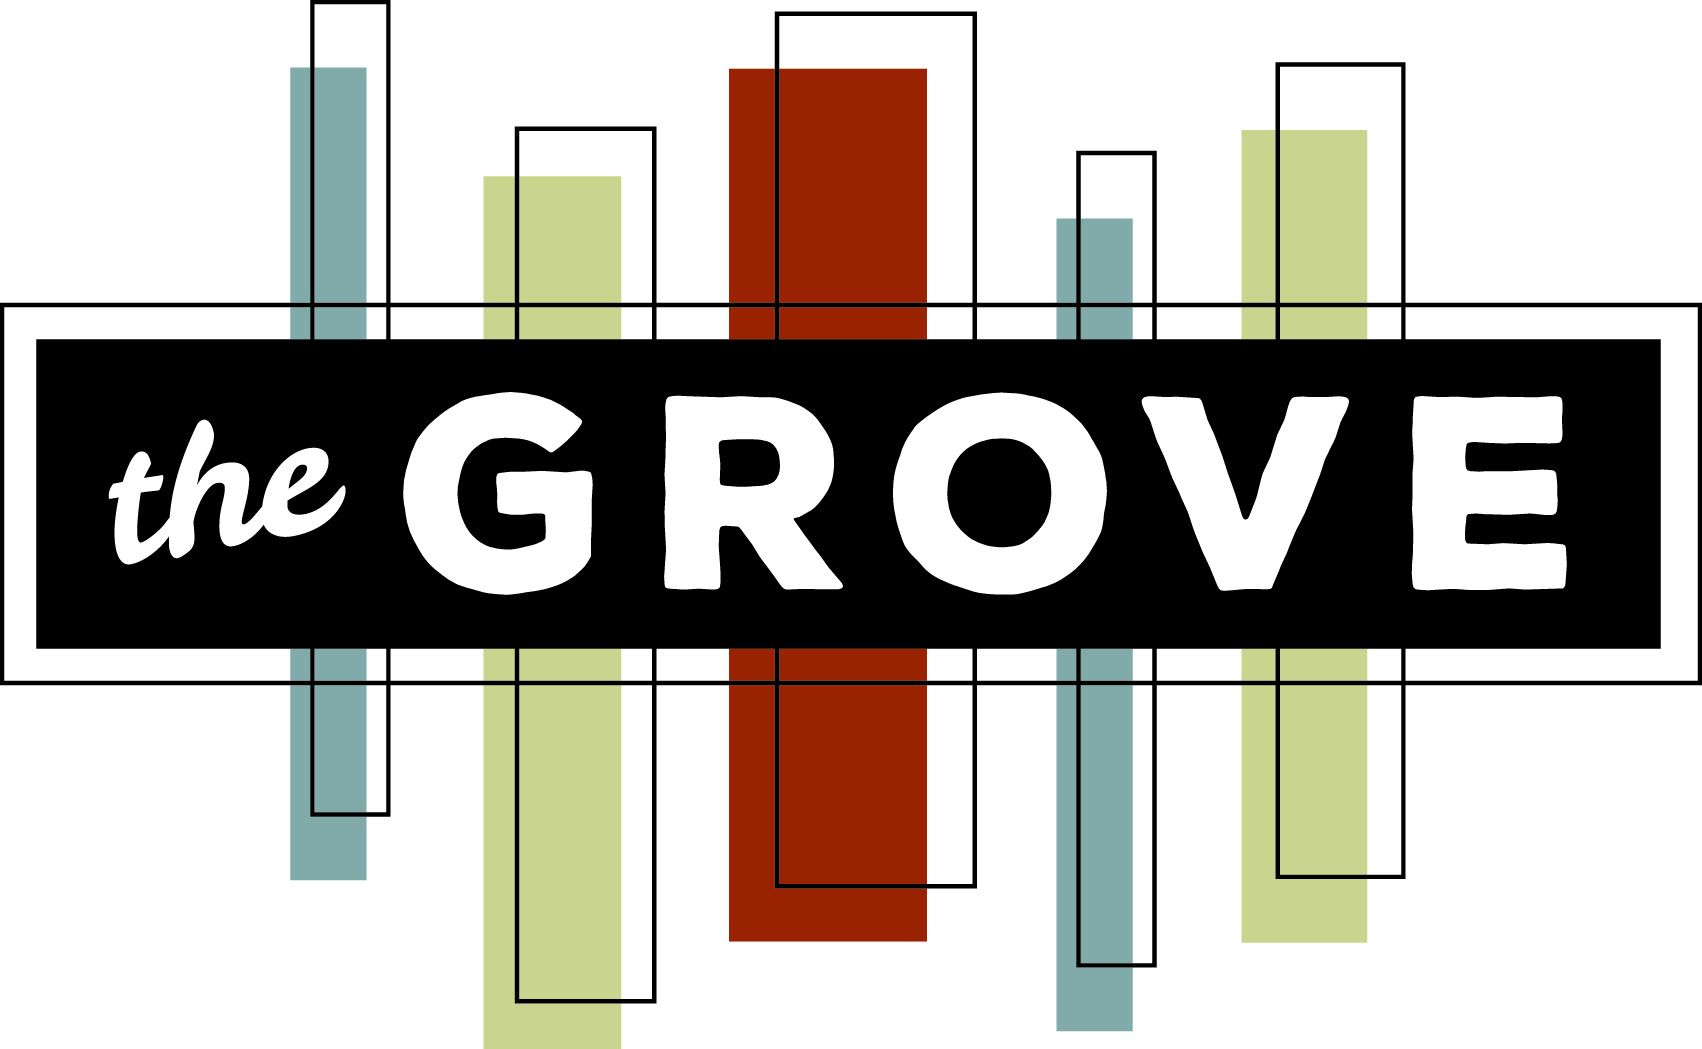 The Grove Venues